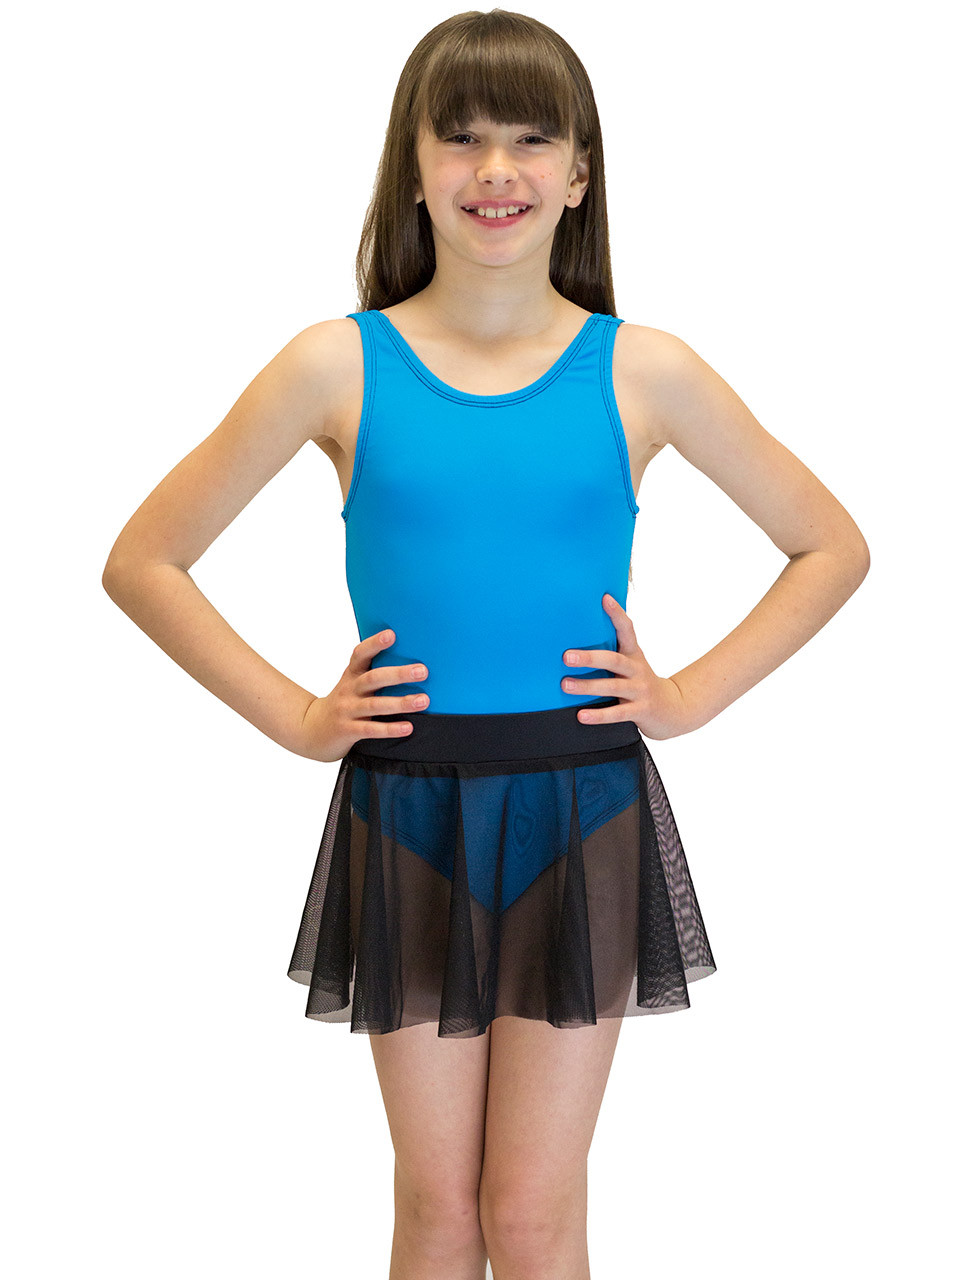 cf682d8e5f5e1 Vivian's Fashions Swimwear - Girls Swimsuit Cover Up, Mesh Skirt ...